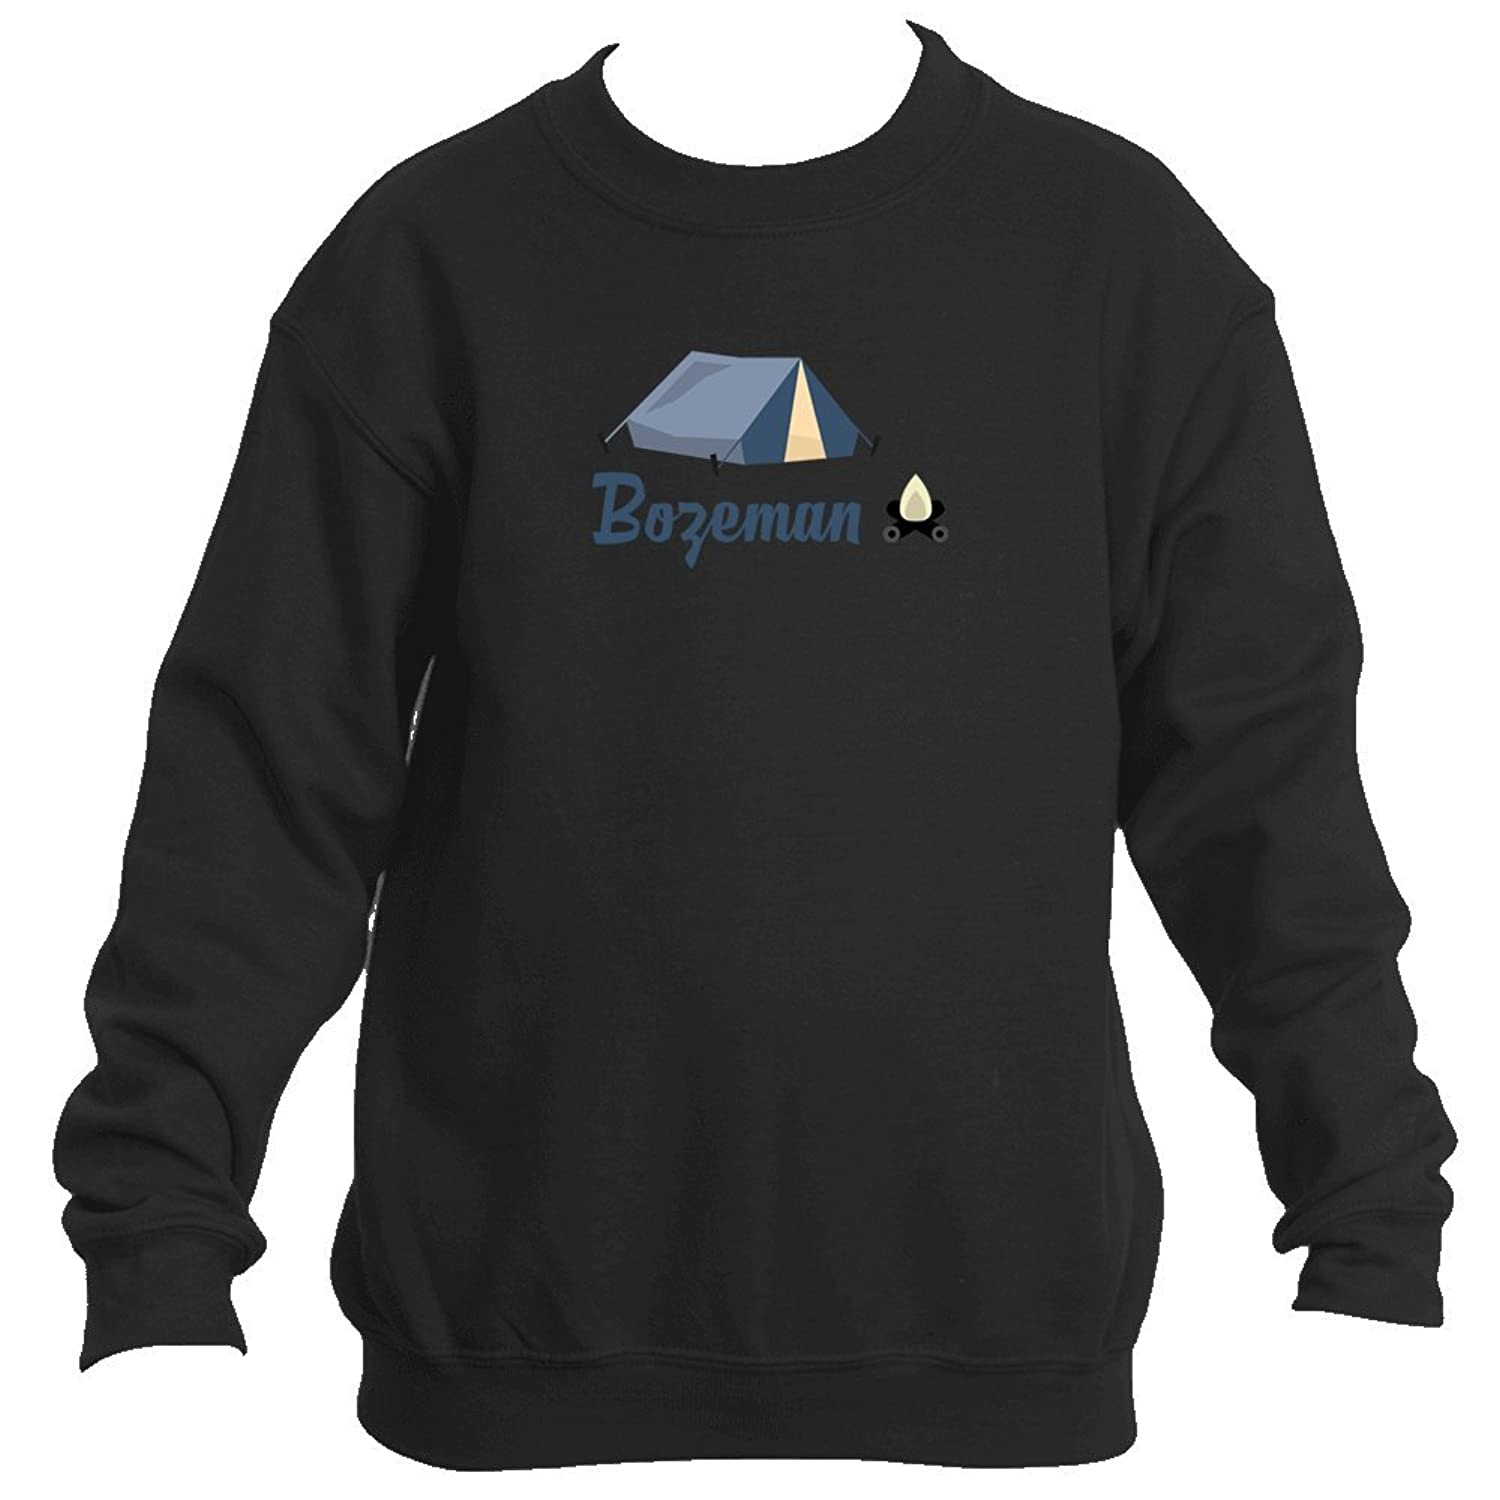 Wholesale Bozeman Camping & Camp Fire - Montana Youth Fleece Crew Sweatshirt - Unisex hot sale